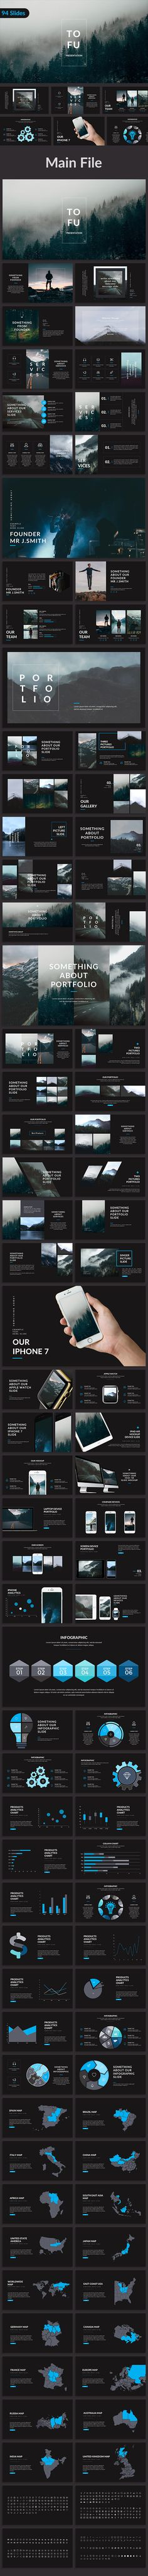 Creative Powerpoint Template  • Download ➝ https://graphicriver.net/item/tofu-creative-powerpoint-template/19544576?ref=pxcr